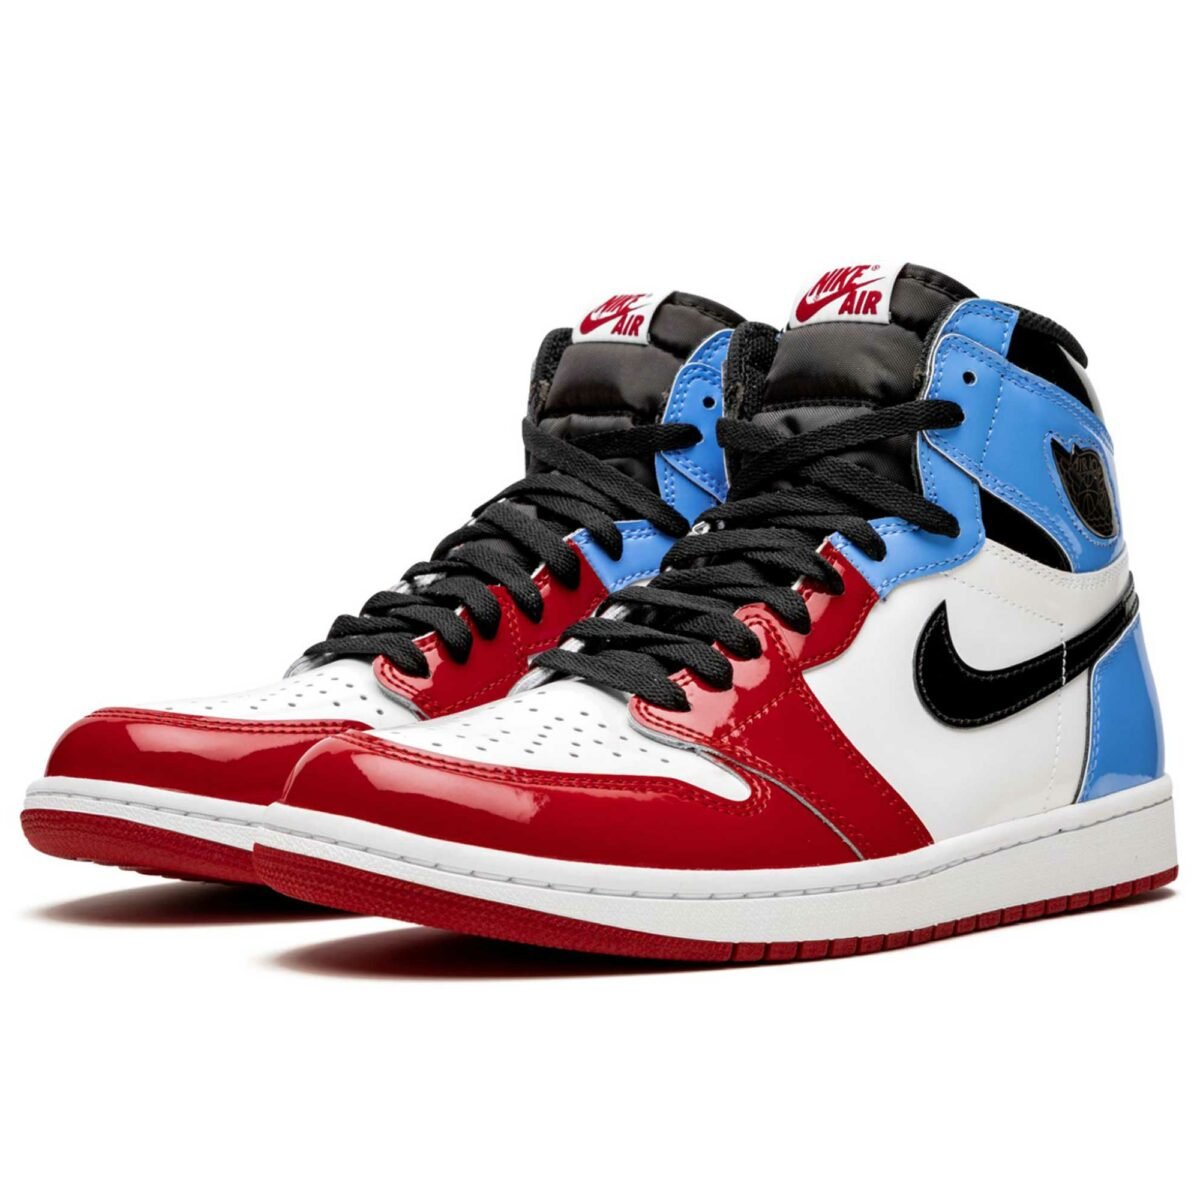 nike air Jordan 1 retro high lestwin - fearless CK5666_100 купить